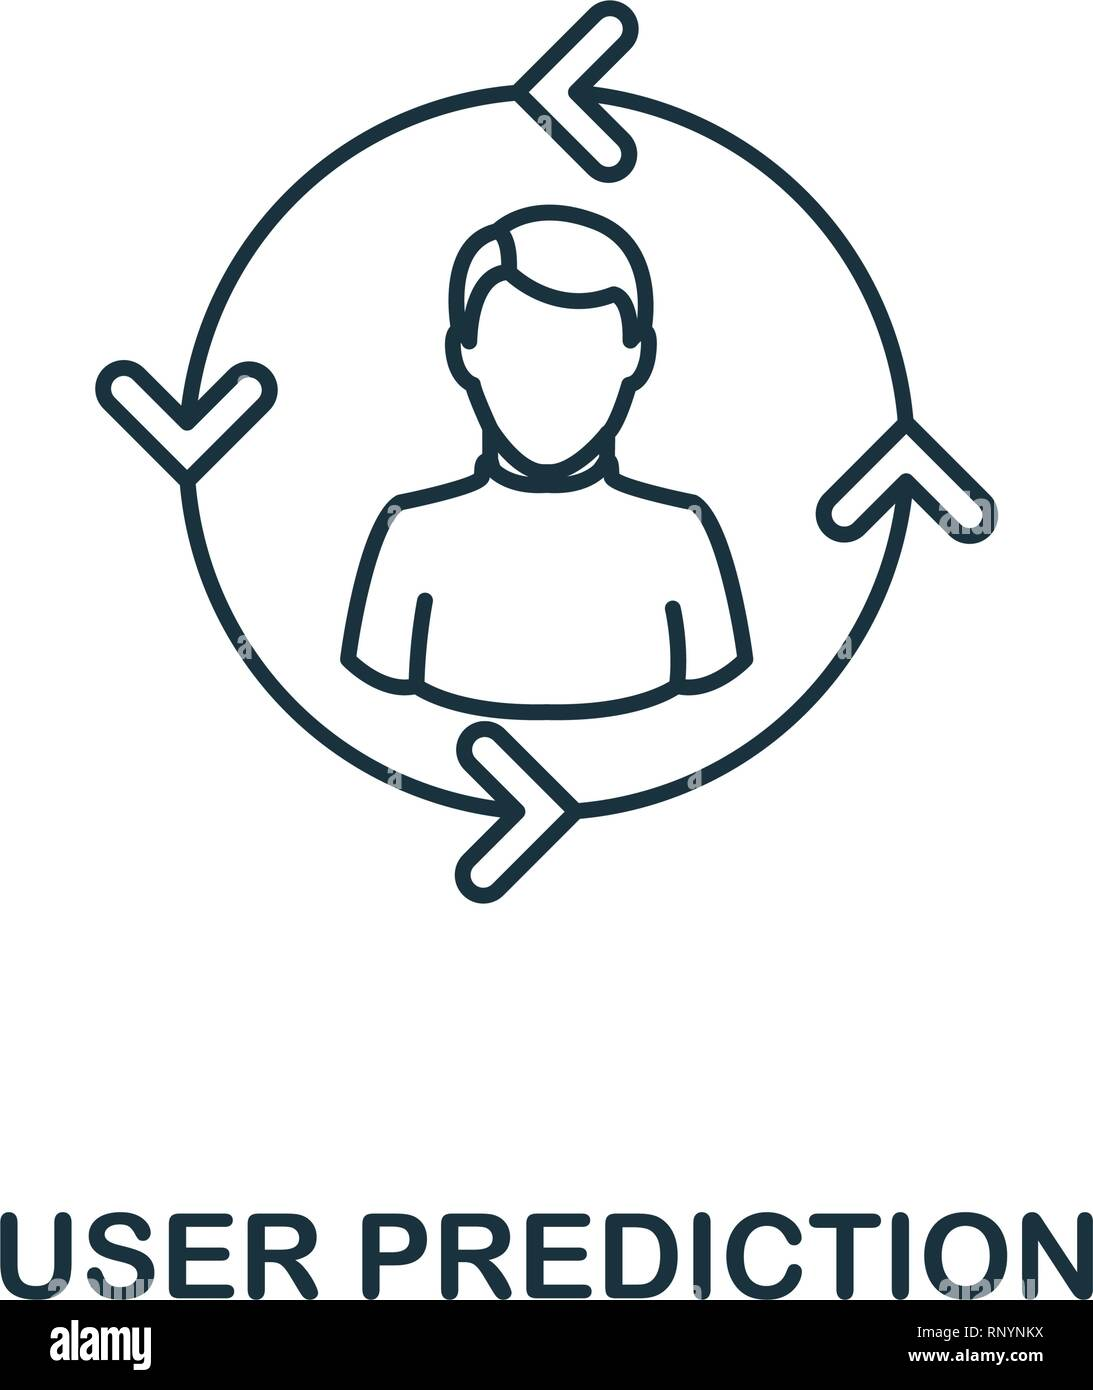 User Prediction outline icon. Thin line style from big data icons collection. Pixel perfect simple element user prediction icon for web design, apps - Stock Image